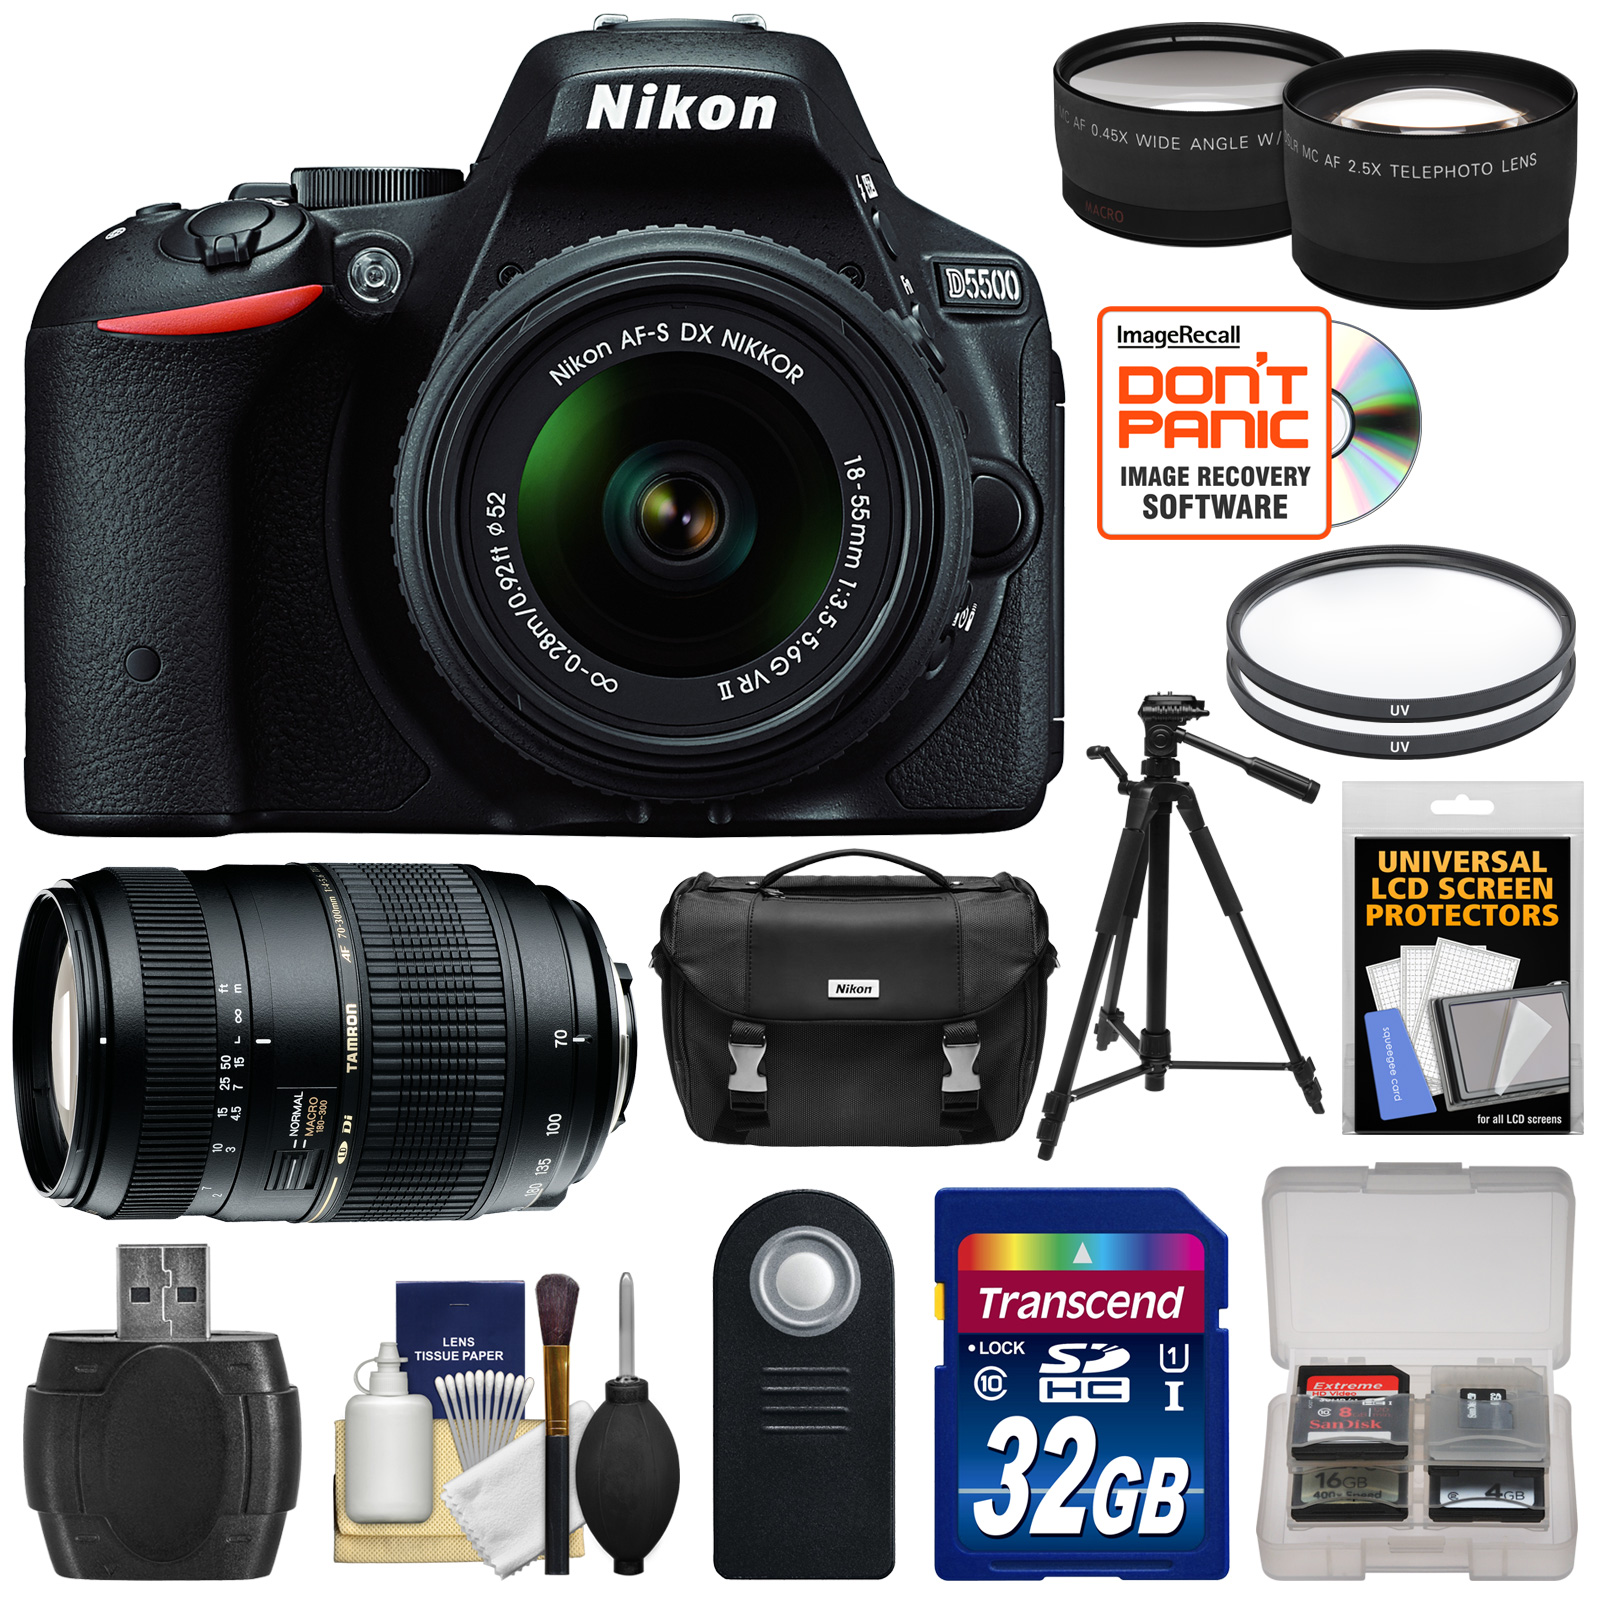 Nikon D5500 Wi-Fi Digital SLR Camera & 18-55mm VR DX Lens (Black) - Factory Refurbished with 70-300mm Zoom Lens + 32GB Card + Case + Filters + Tripod + Kit 1546B-89930-Kit